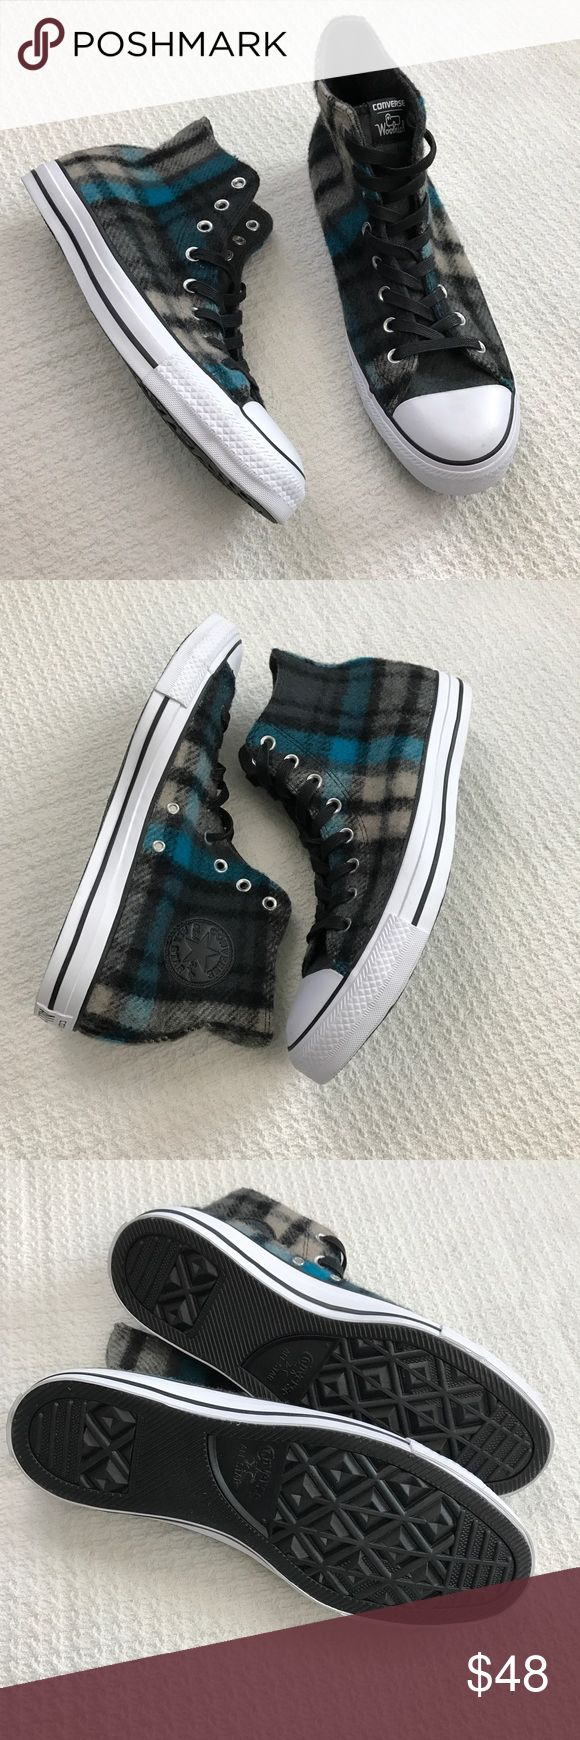 * Converse * Plaid Woolrich High Top Chucks Converse and Woolrich collaborate to make these Wool Plaid High top Chuck Taylors. Adorable blue/black/gray color scheme. These have never been worn! Missing the original tags but brand new. Men's 10 / Women's 12. Converse Shoes Sneakers